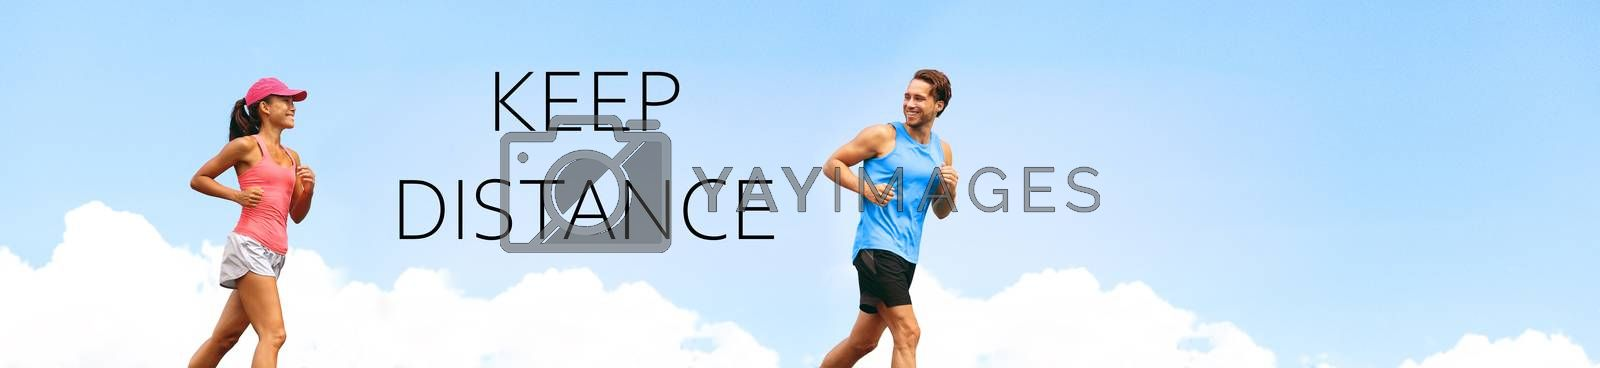 KEEP DISTANCE social distancing COVID-19 people walking running exercising outdoor in city. Healthy active runners man woman jogging header summer lifestyle banner by Maridav